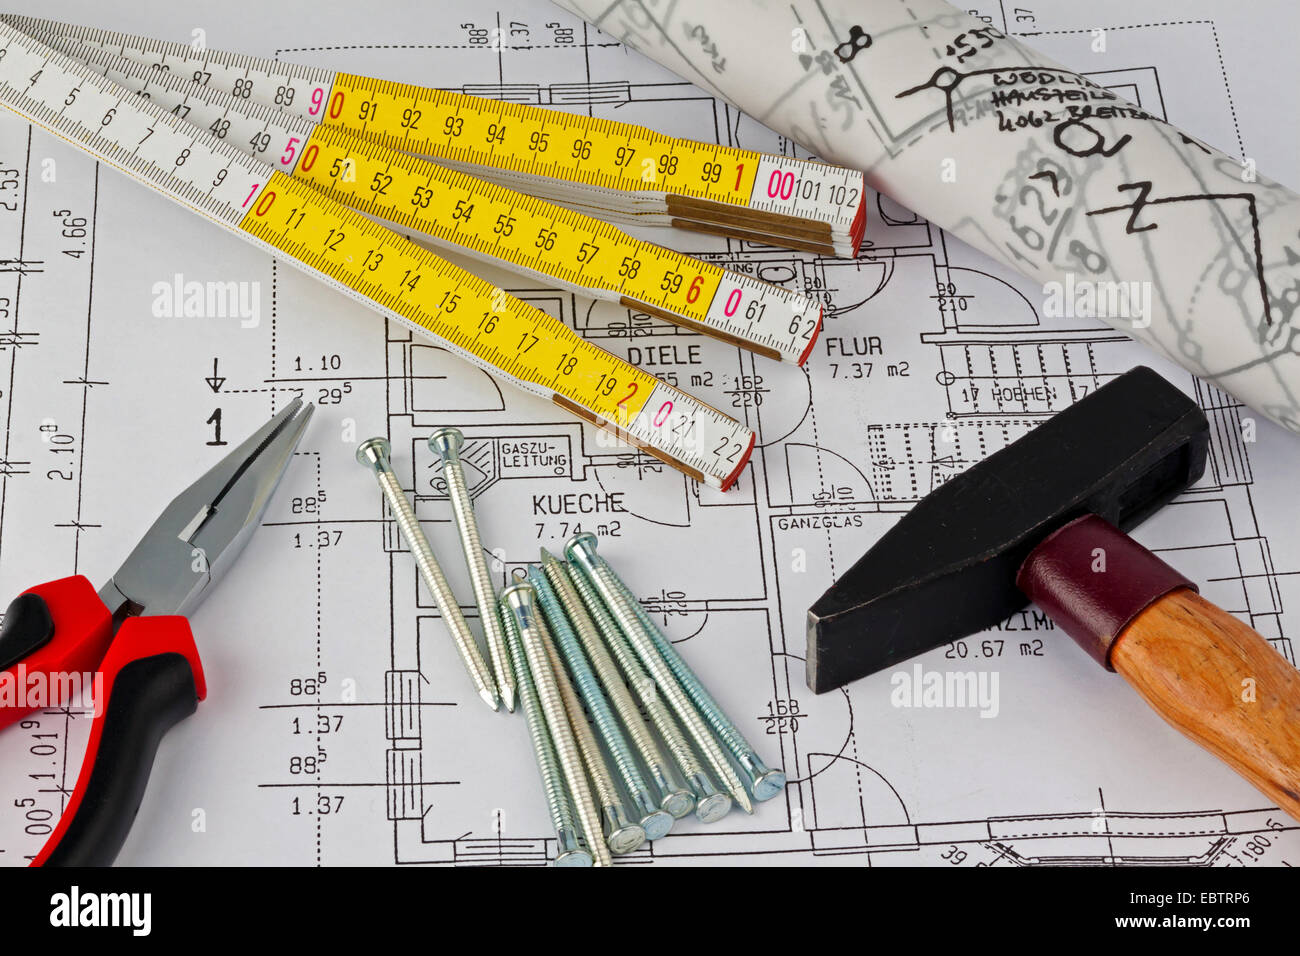 House Hand Drawings Stockfotos & House Hand Drawings Bilder - Alamy